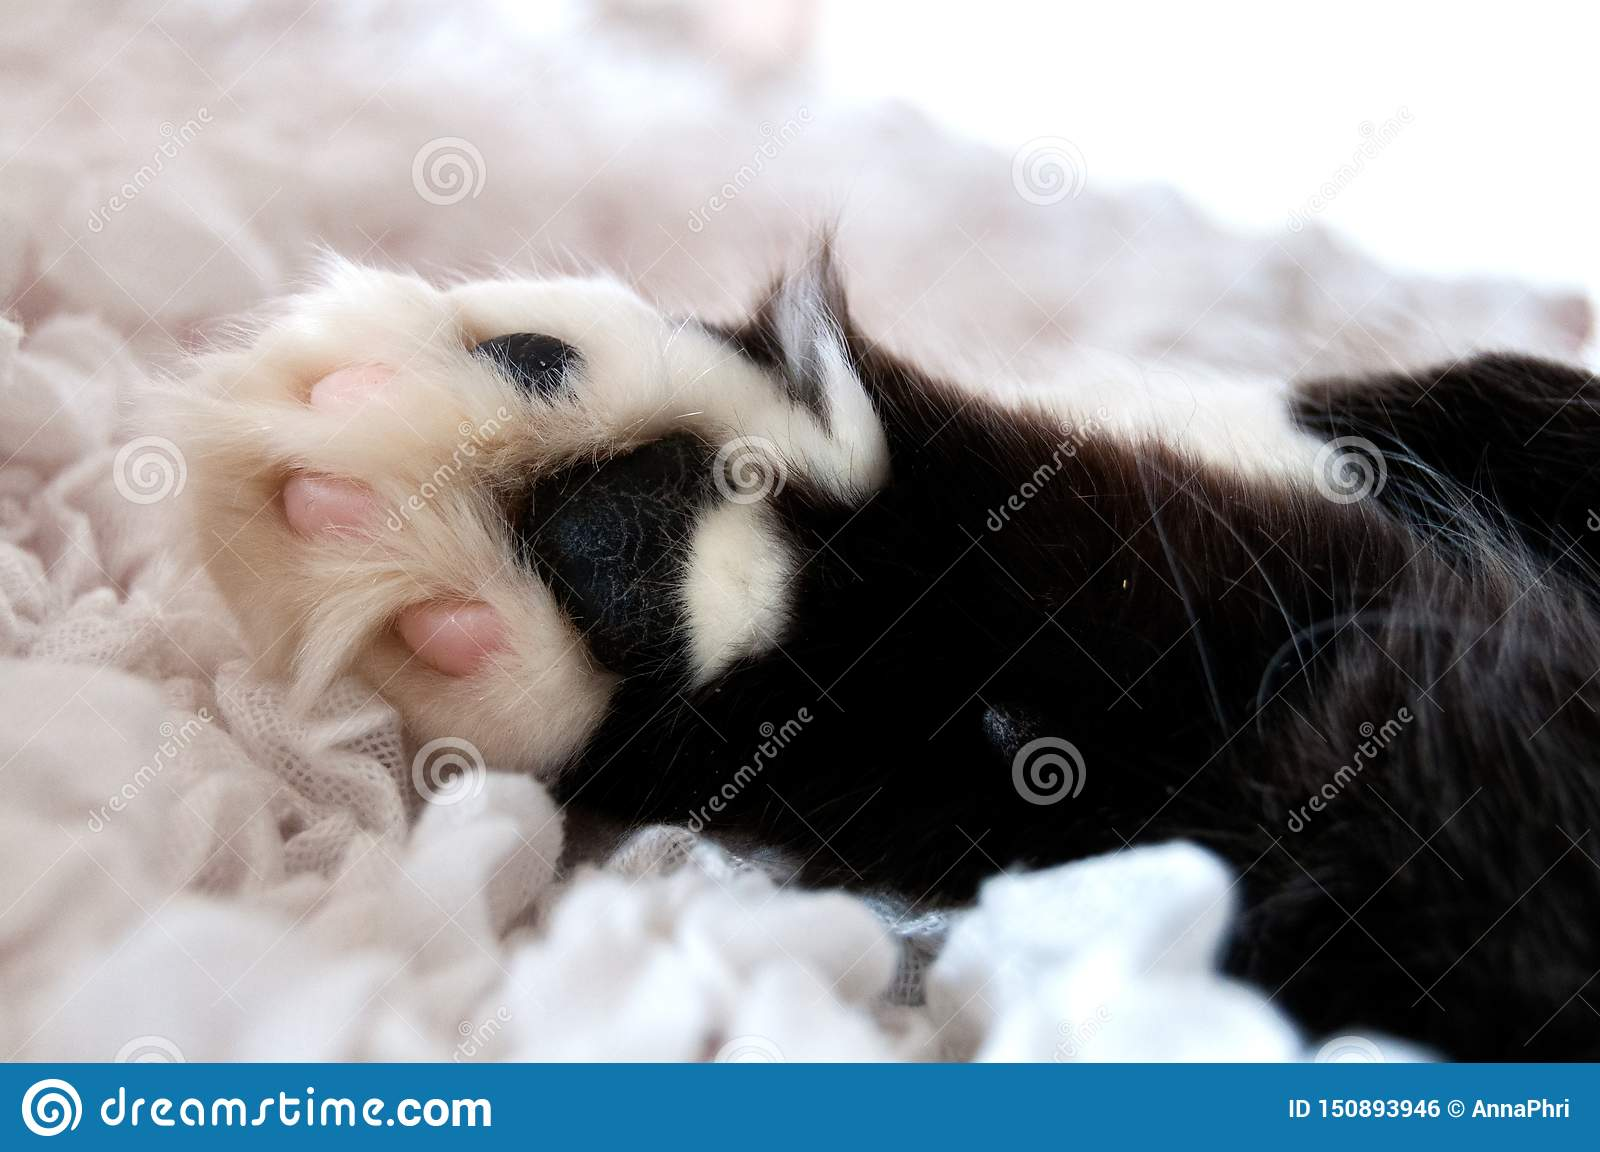 Fluffy black and white cat`s paw on a white cloth